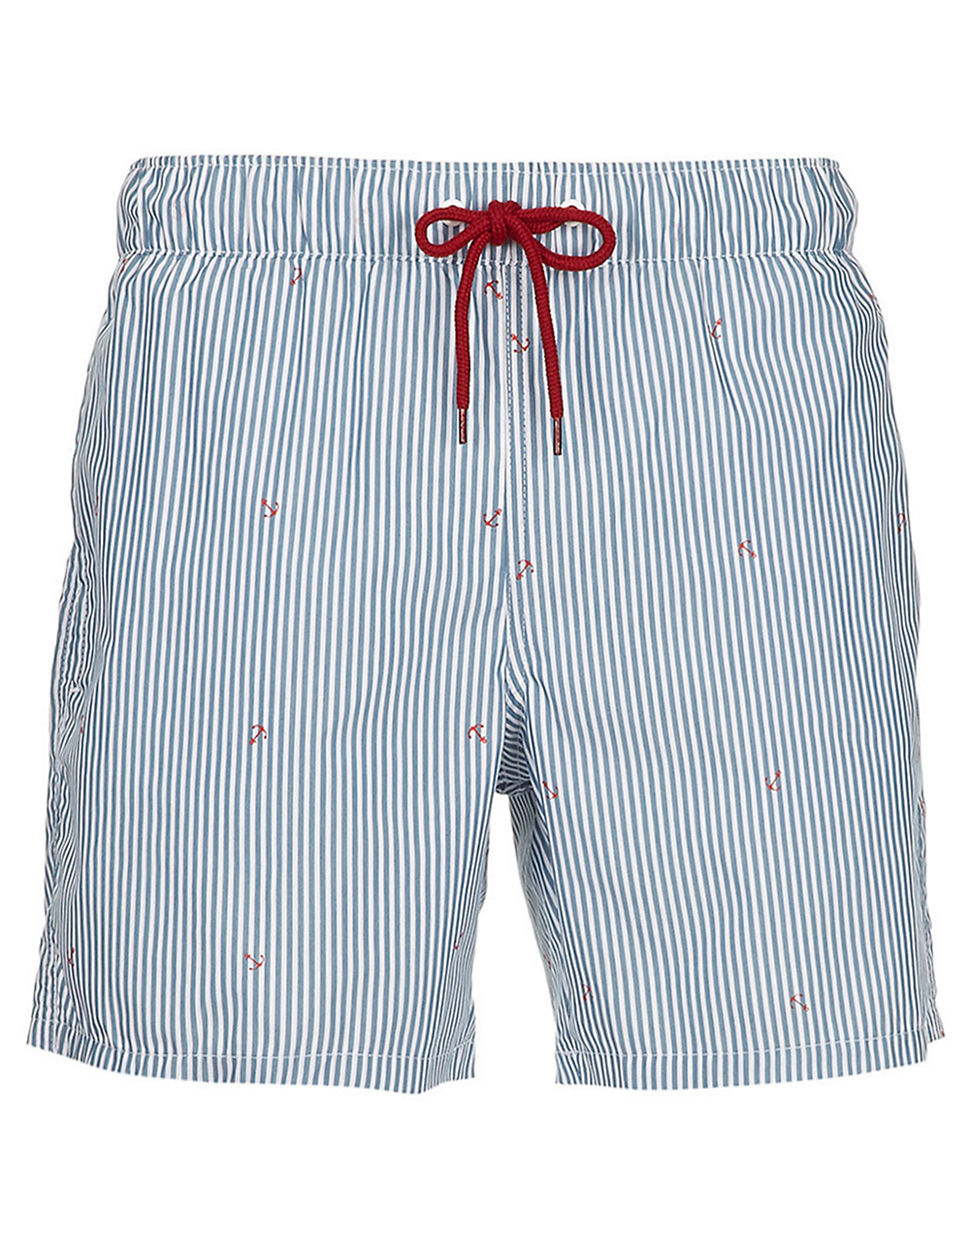 Topman Navy And White Stripe Swim Shorts blue XXSmall